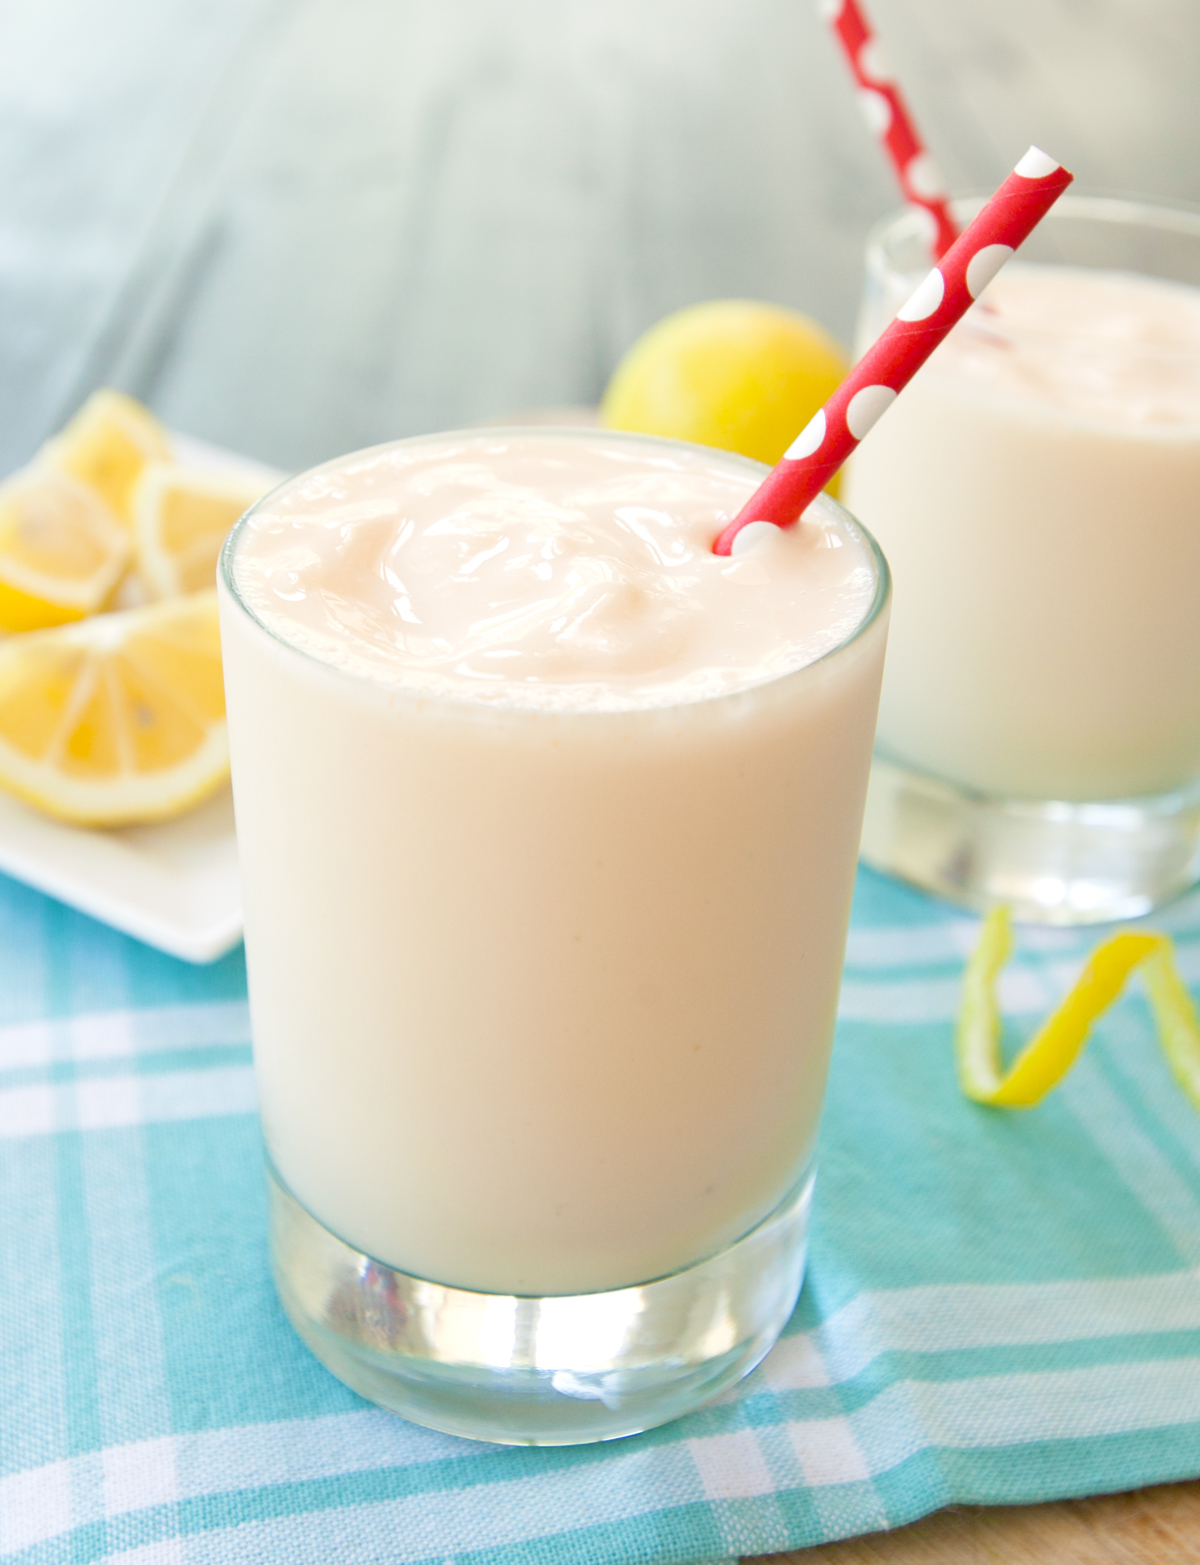 a single glass of frosted lemonade